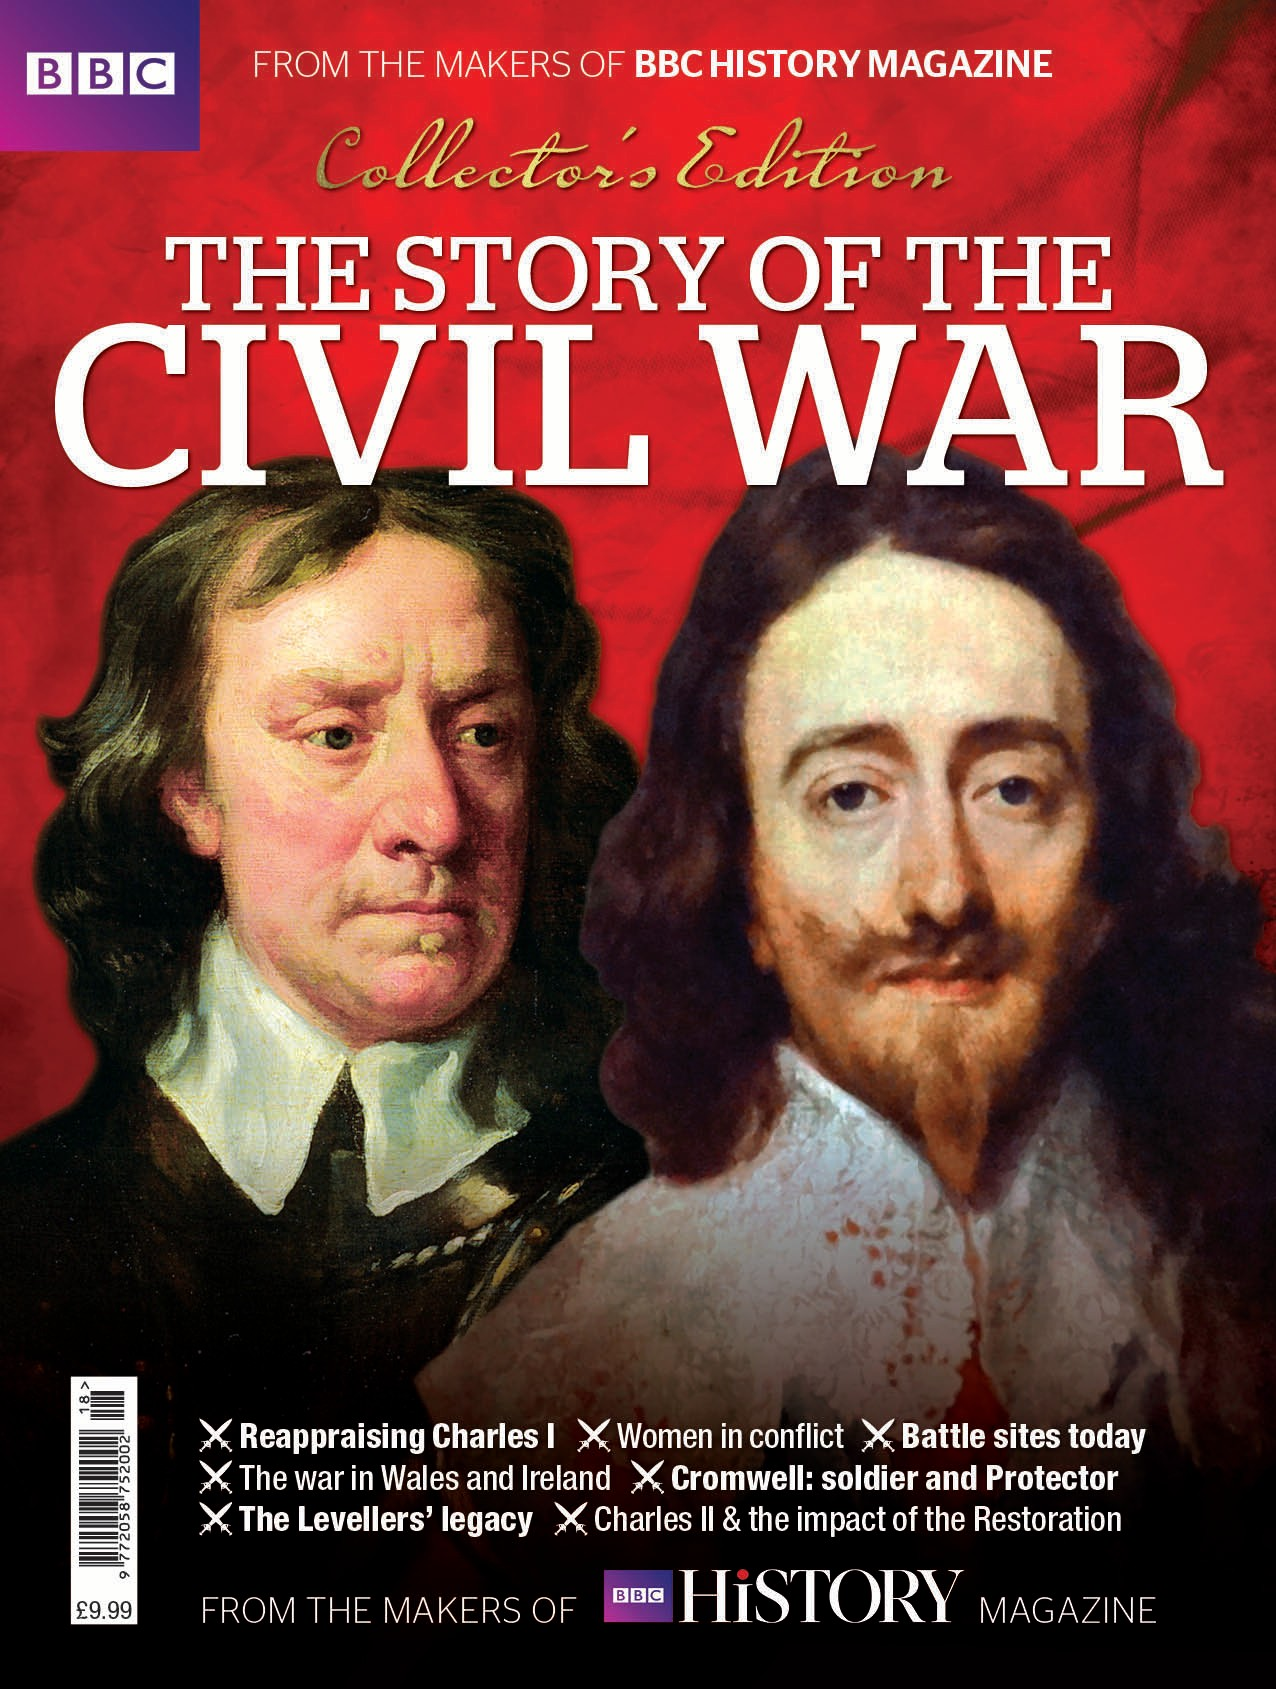 The Story of the Civil War.